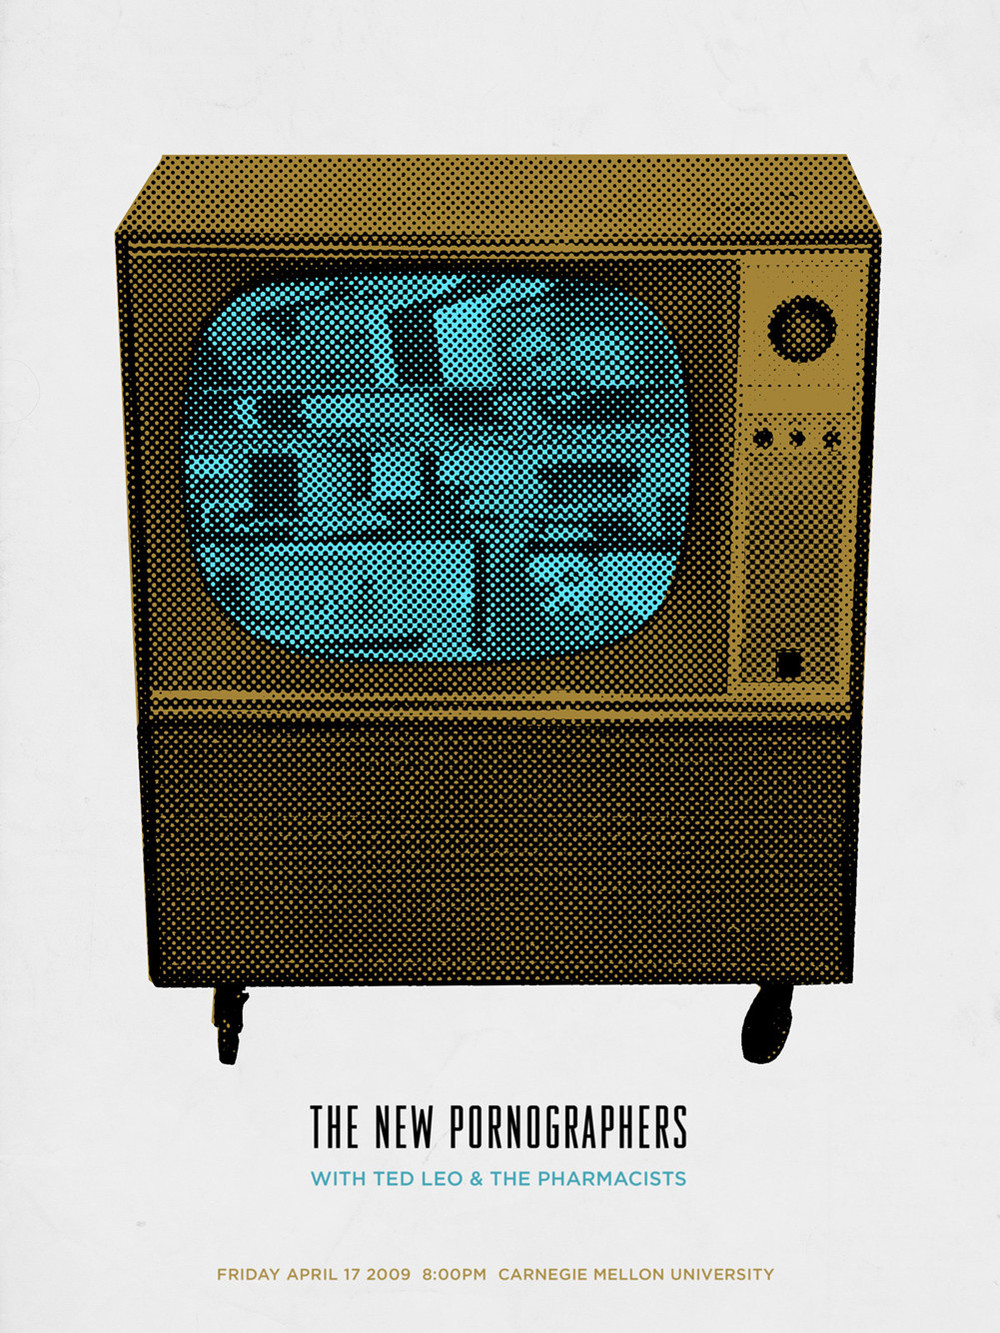 "2009:    The New Pornographers   are A.C. Newman, Blaine Thurier, Dan Bejar, John Collins, Kathryn Calder, Neko Case and Todd Fancey. Since their debut in 2000, The New Pornographers have released five studio albums including their most recent, Together (2010), of which, NPR Music praised, ""Unimpeachable pop gems…these are the songs of summer"" while ELLE magazine asserted, ""The New Pornographers have done what all great bands do: Evolve…unpretentious and unbelievably infectious"" and the Associated Press heralded, ""…Together finds them at their peak. The melding of Newman's voice with Neko Case and Kathryn Calder is endlessly inventive, weaving in and out of the nervous-sounding rhythm that is the band's calling card. The first four songs are what the Electric Light Orchestra meant to achieve but never quite did."""